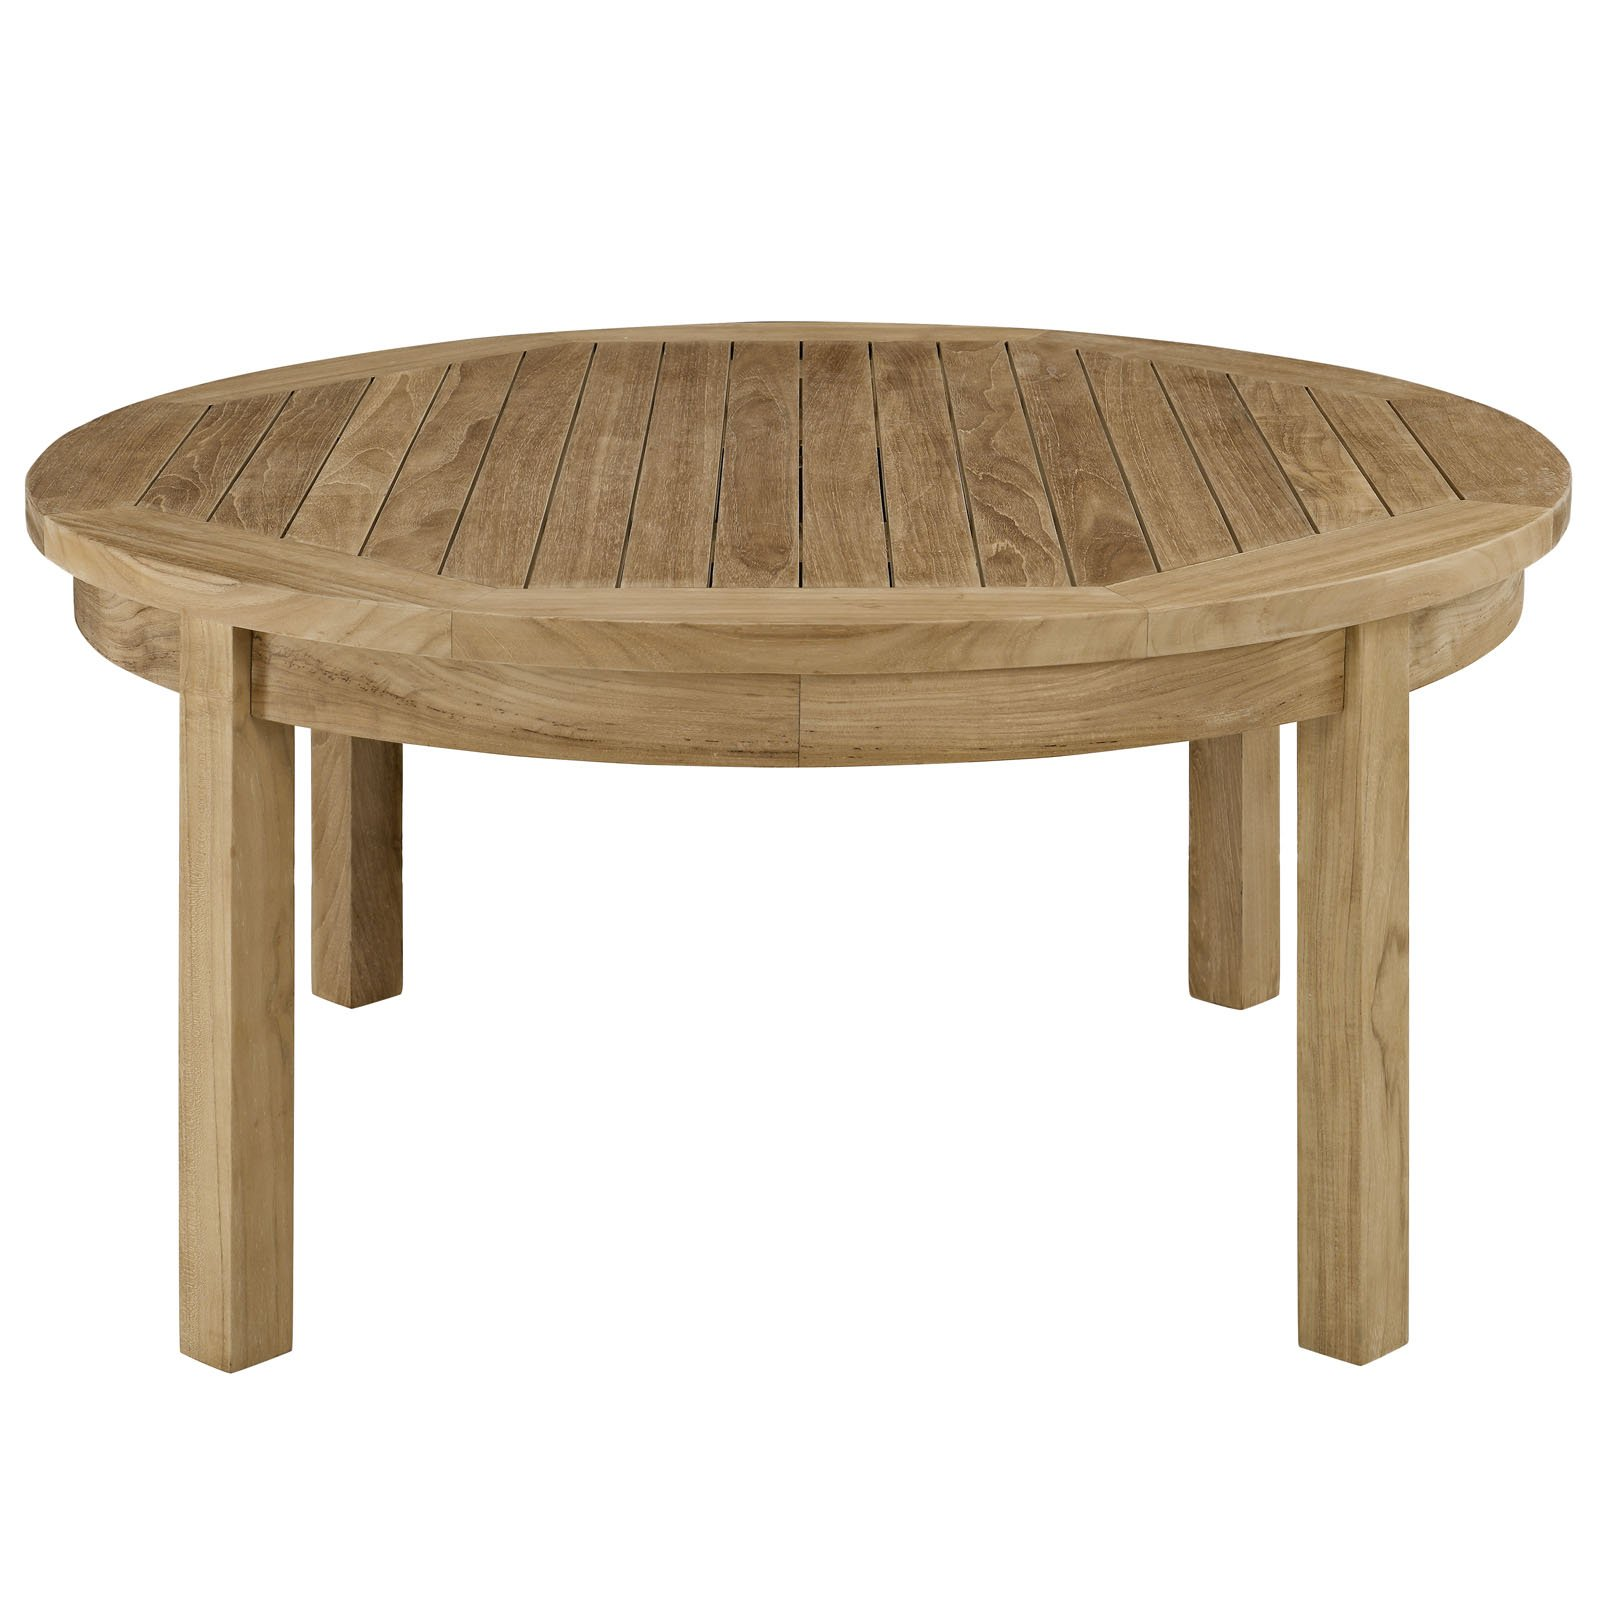 Modway Marina Teak Wood Outdoor Patio Round Coffee Table In